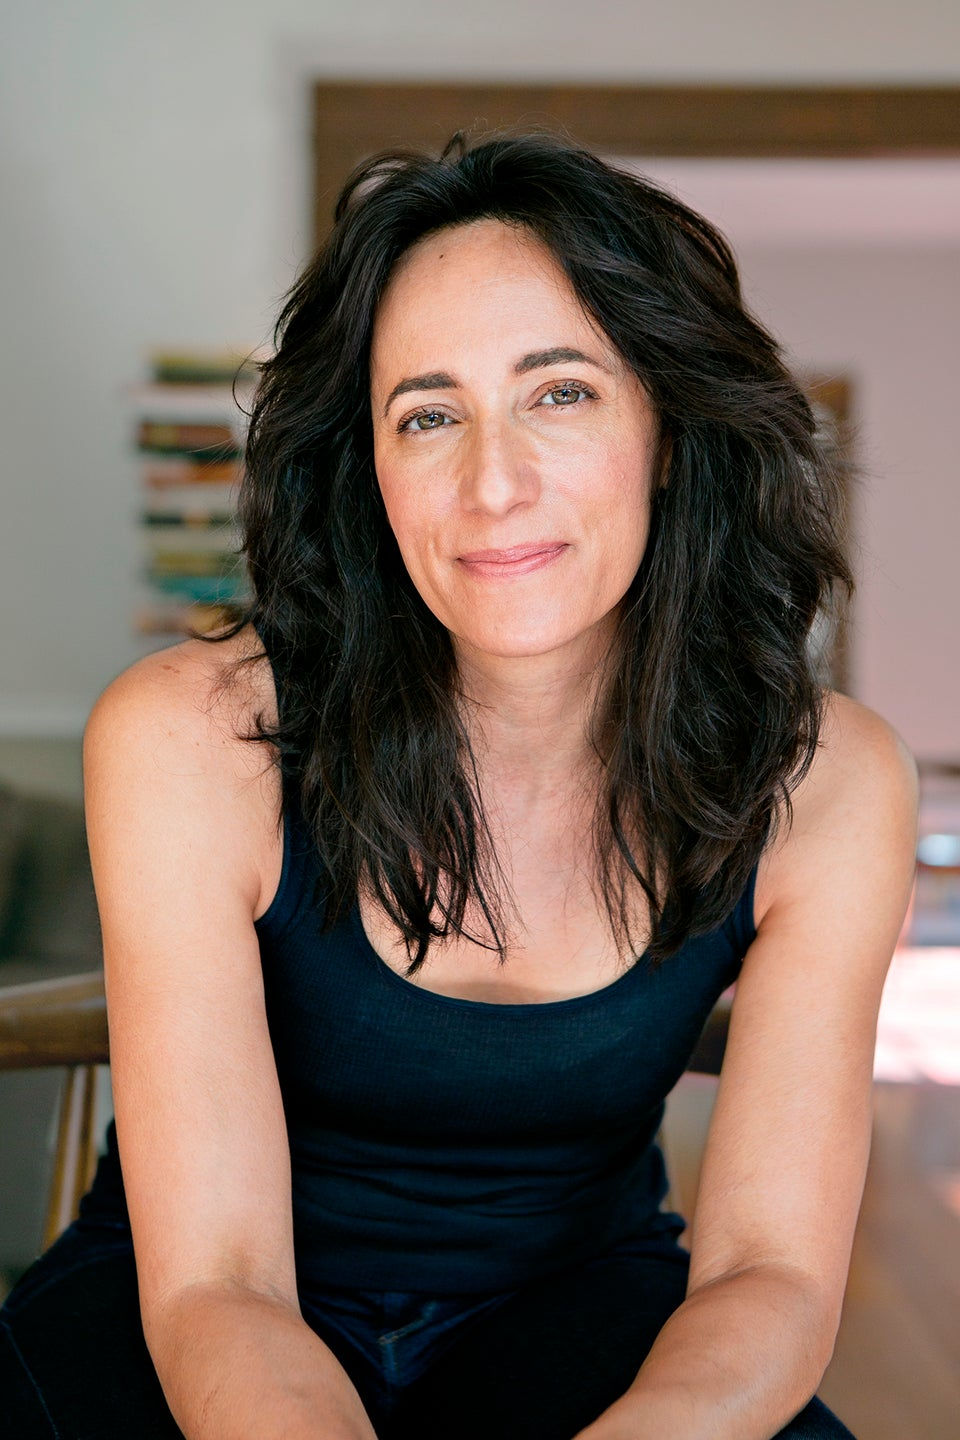 Danzy Senna's New Book Takes On Modern Race Issues With Humor And Intelligence